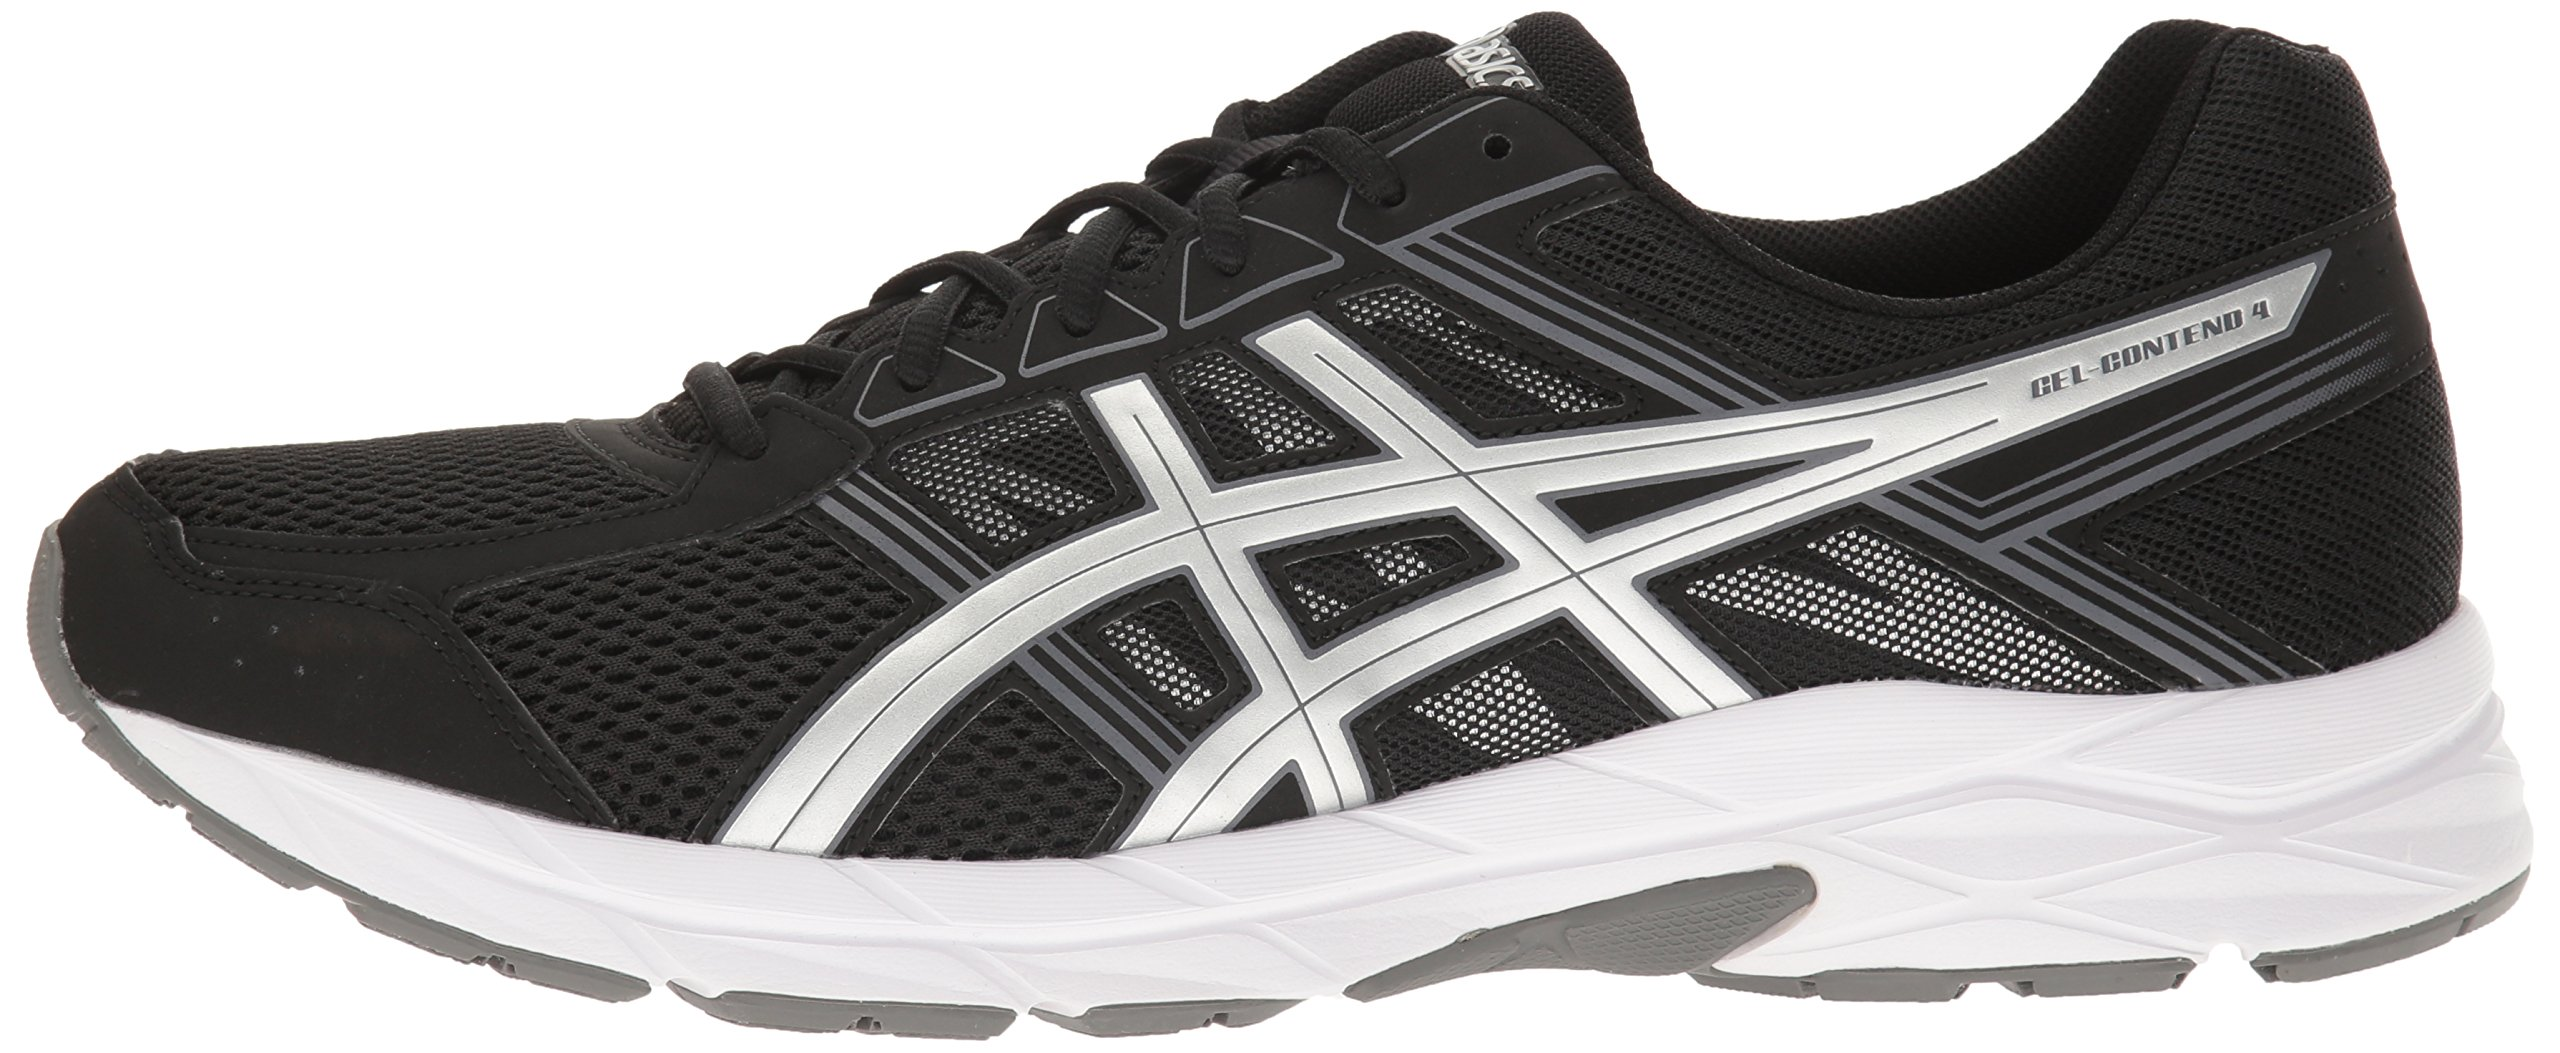 ASICS Men's Gel-Contend 4 Running Shoe, Black/Silver/Carbon, 7.5 M US by ASICS (Image #5)